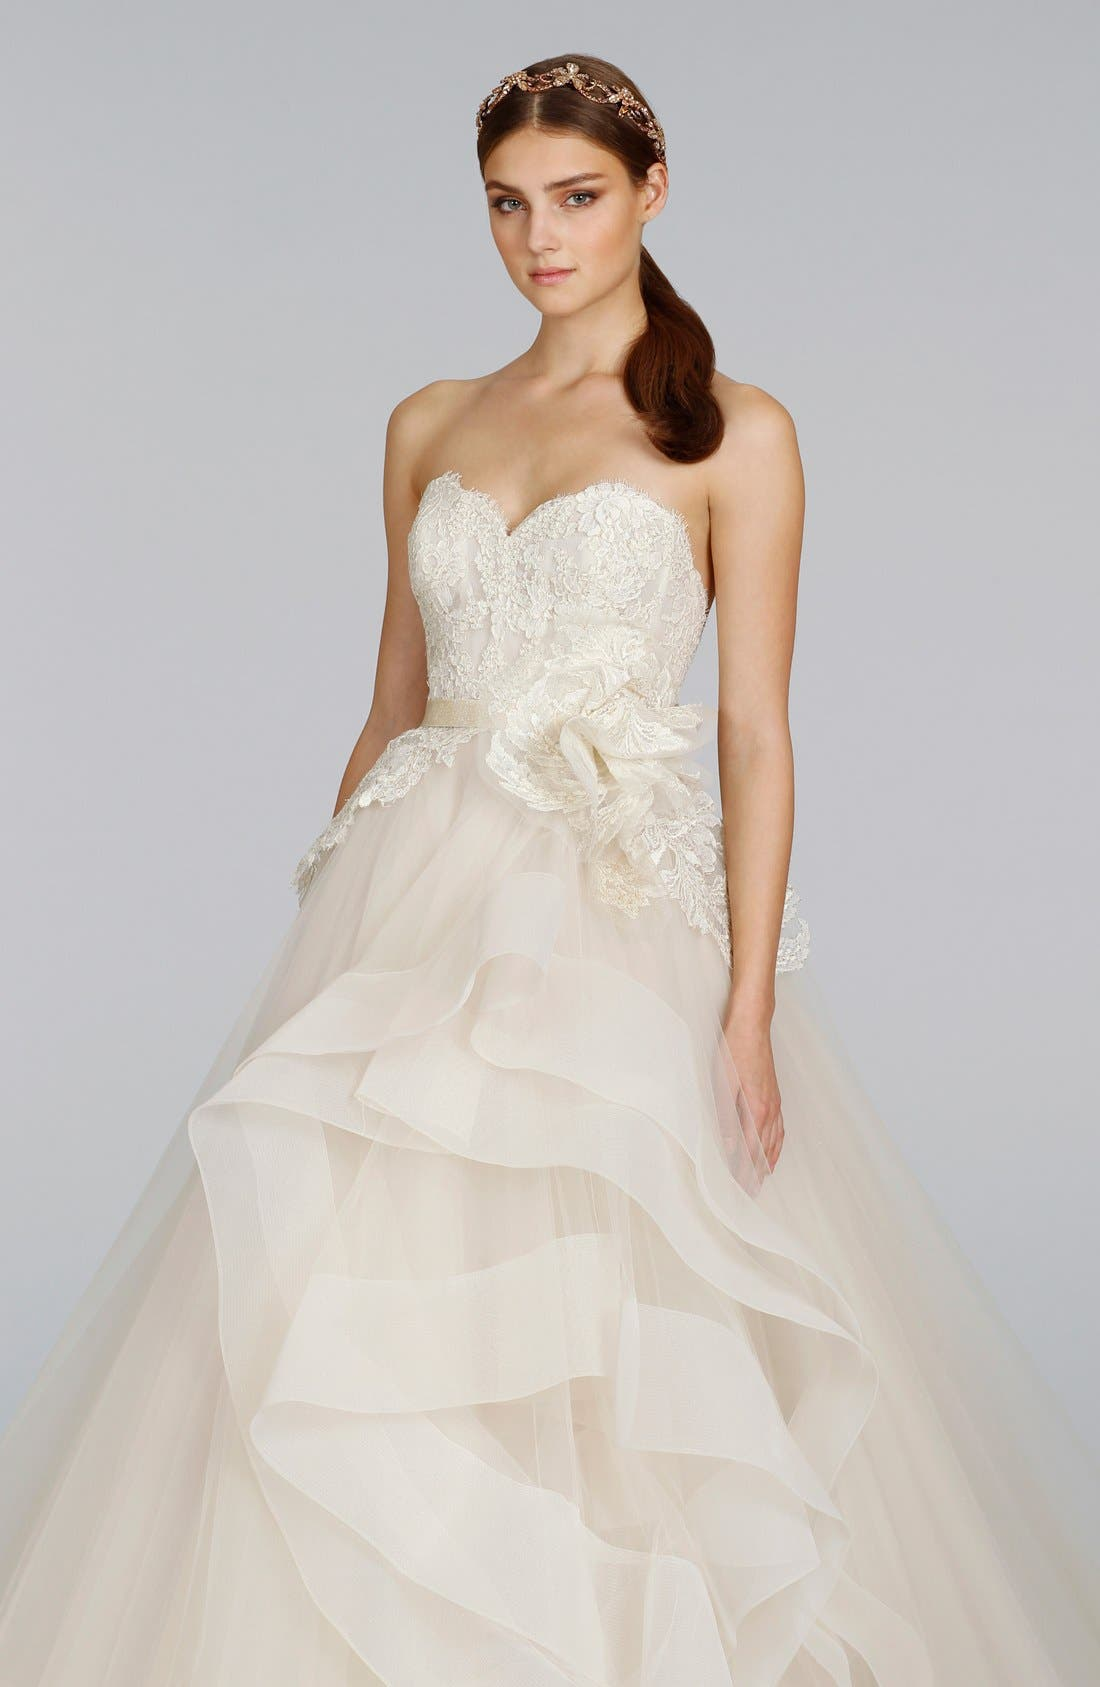 Strapless Lace & Layered Tulle Ballgown,                             Alternate thumbnail 2, color,                             IVORY/GOLD/CHAMPAGNE